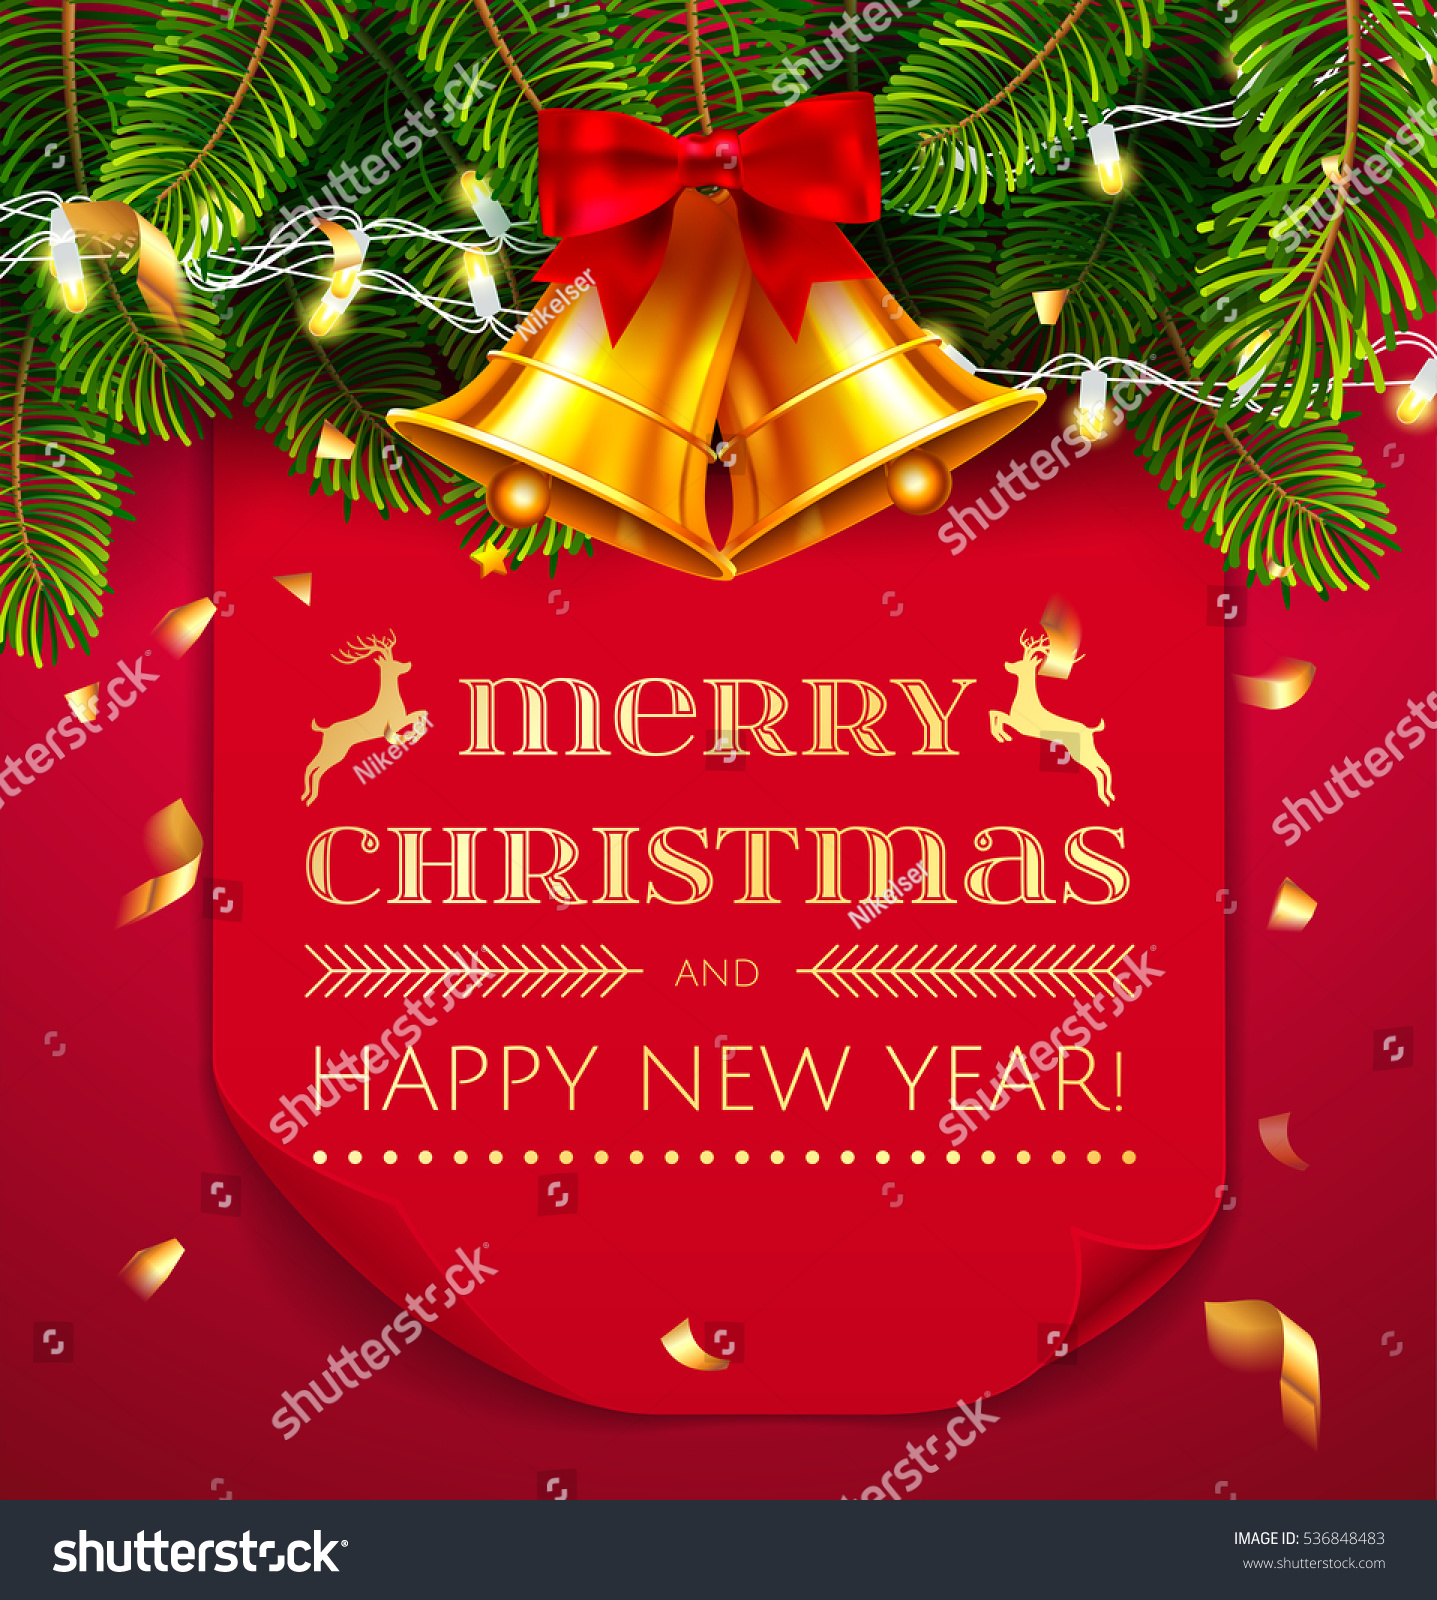 merry christmas and happy new year greeting card template red curved paper